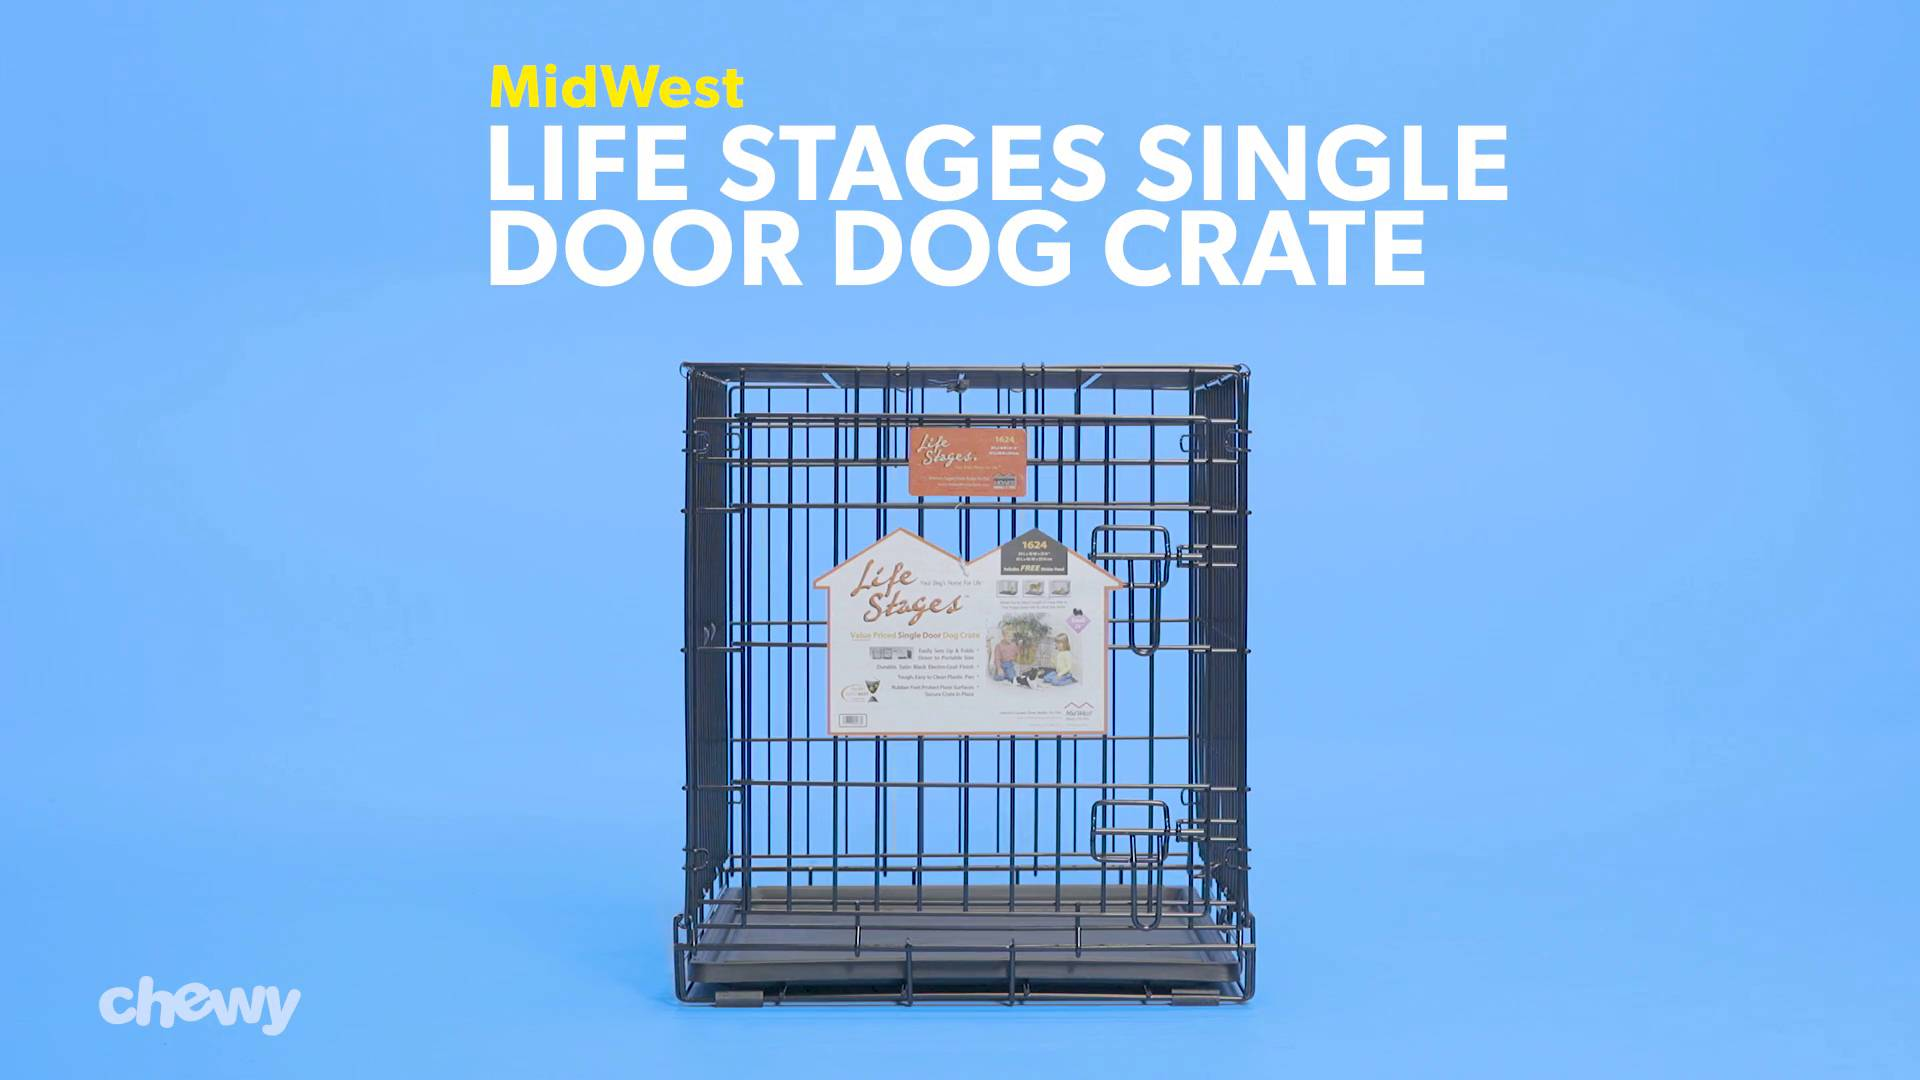 Midwest Lifestages Single Door Dog Crate 42 In Chewy